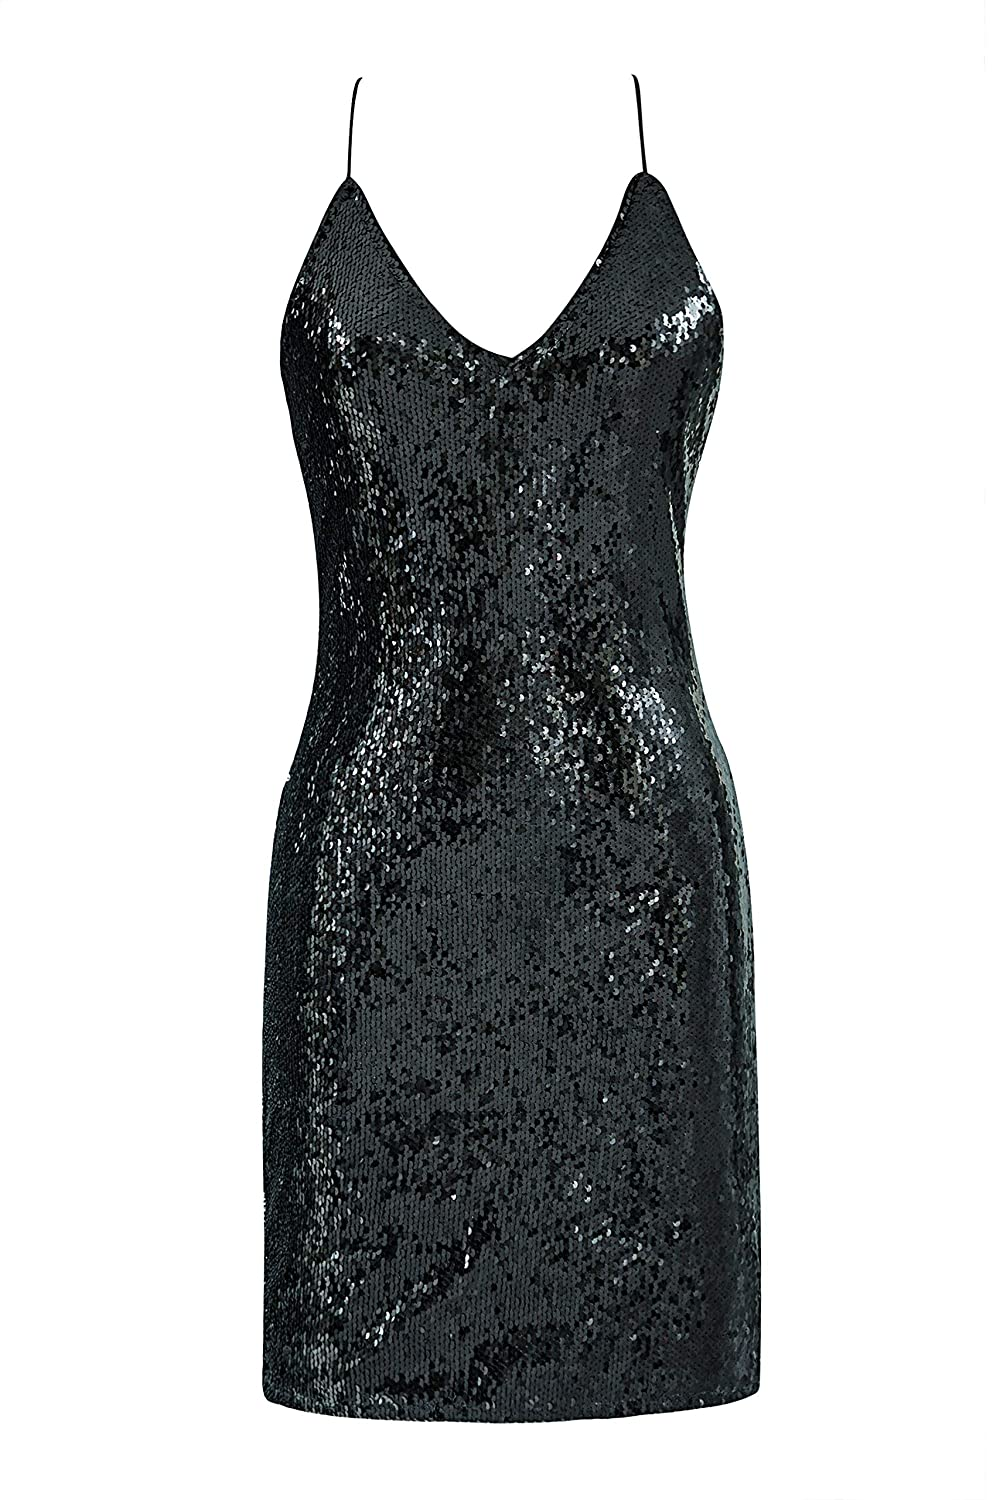 Vintage Cocktail Dresses, Party Dresses Metme Sexy Gradient Sparkling Sequins Dress Halter Neck Strap Sleeveless Backless V Neck Club wear Body-con Party Mini Dress $32.99 AT vintagedancer.com